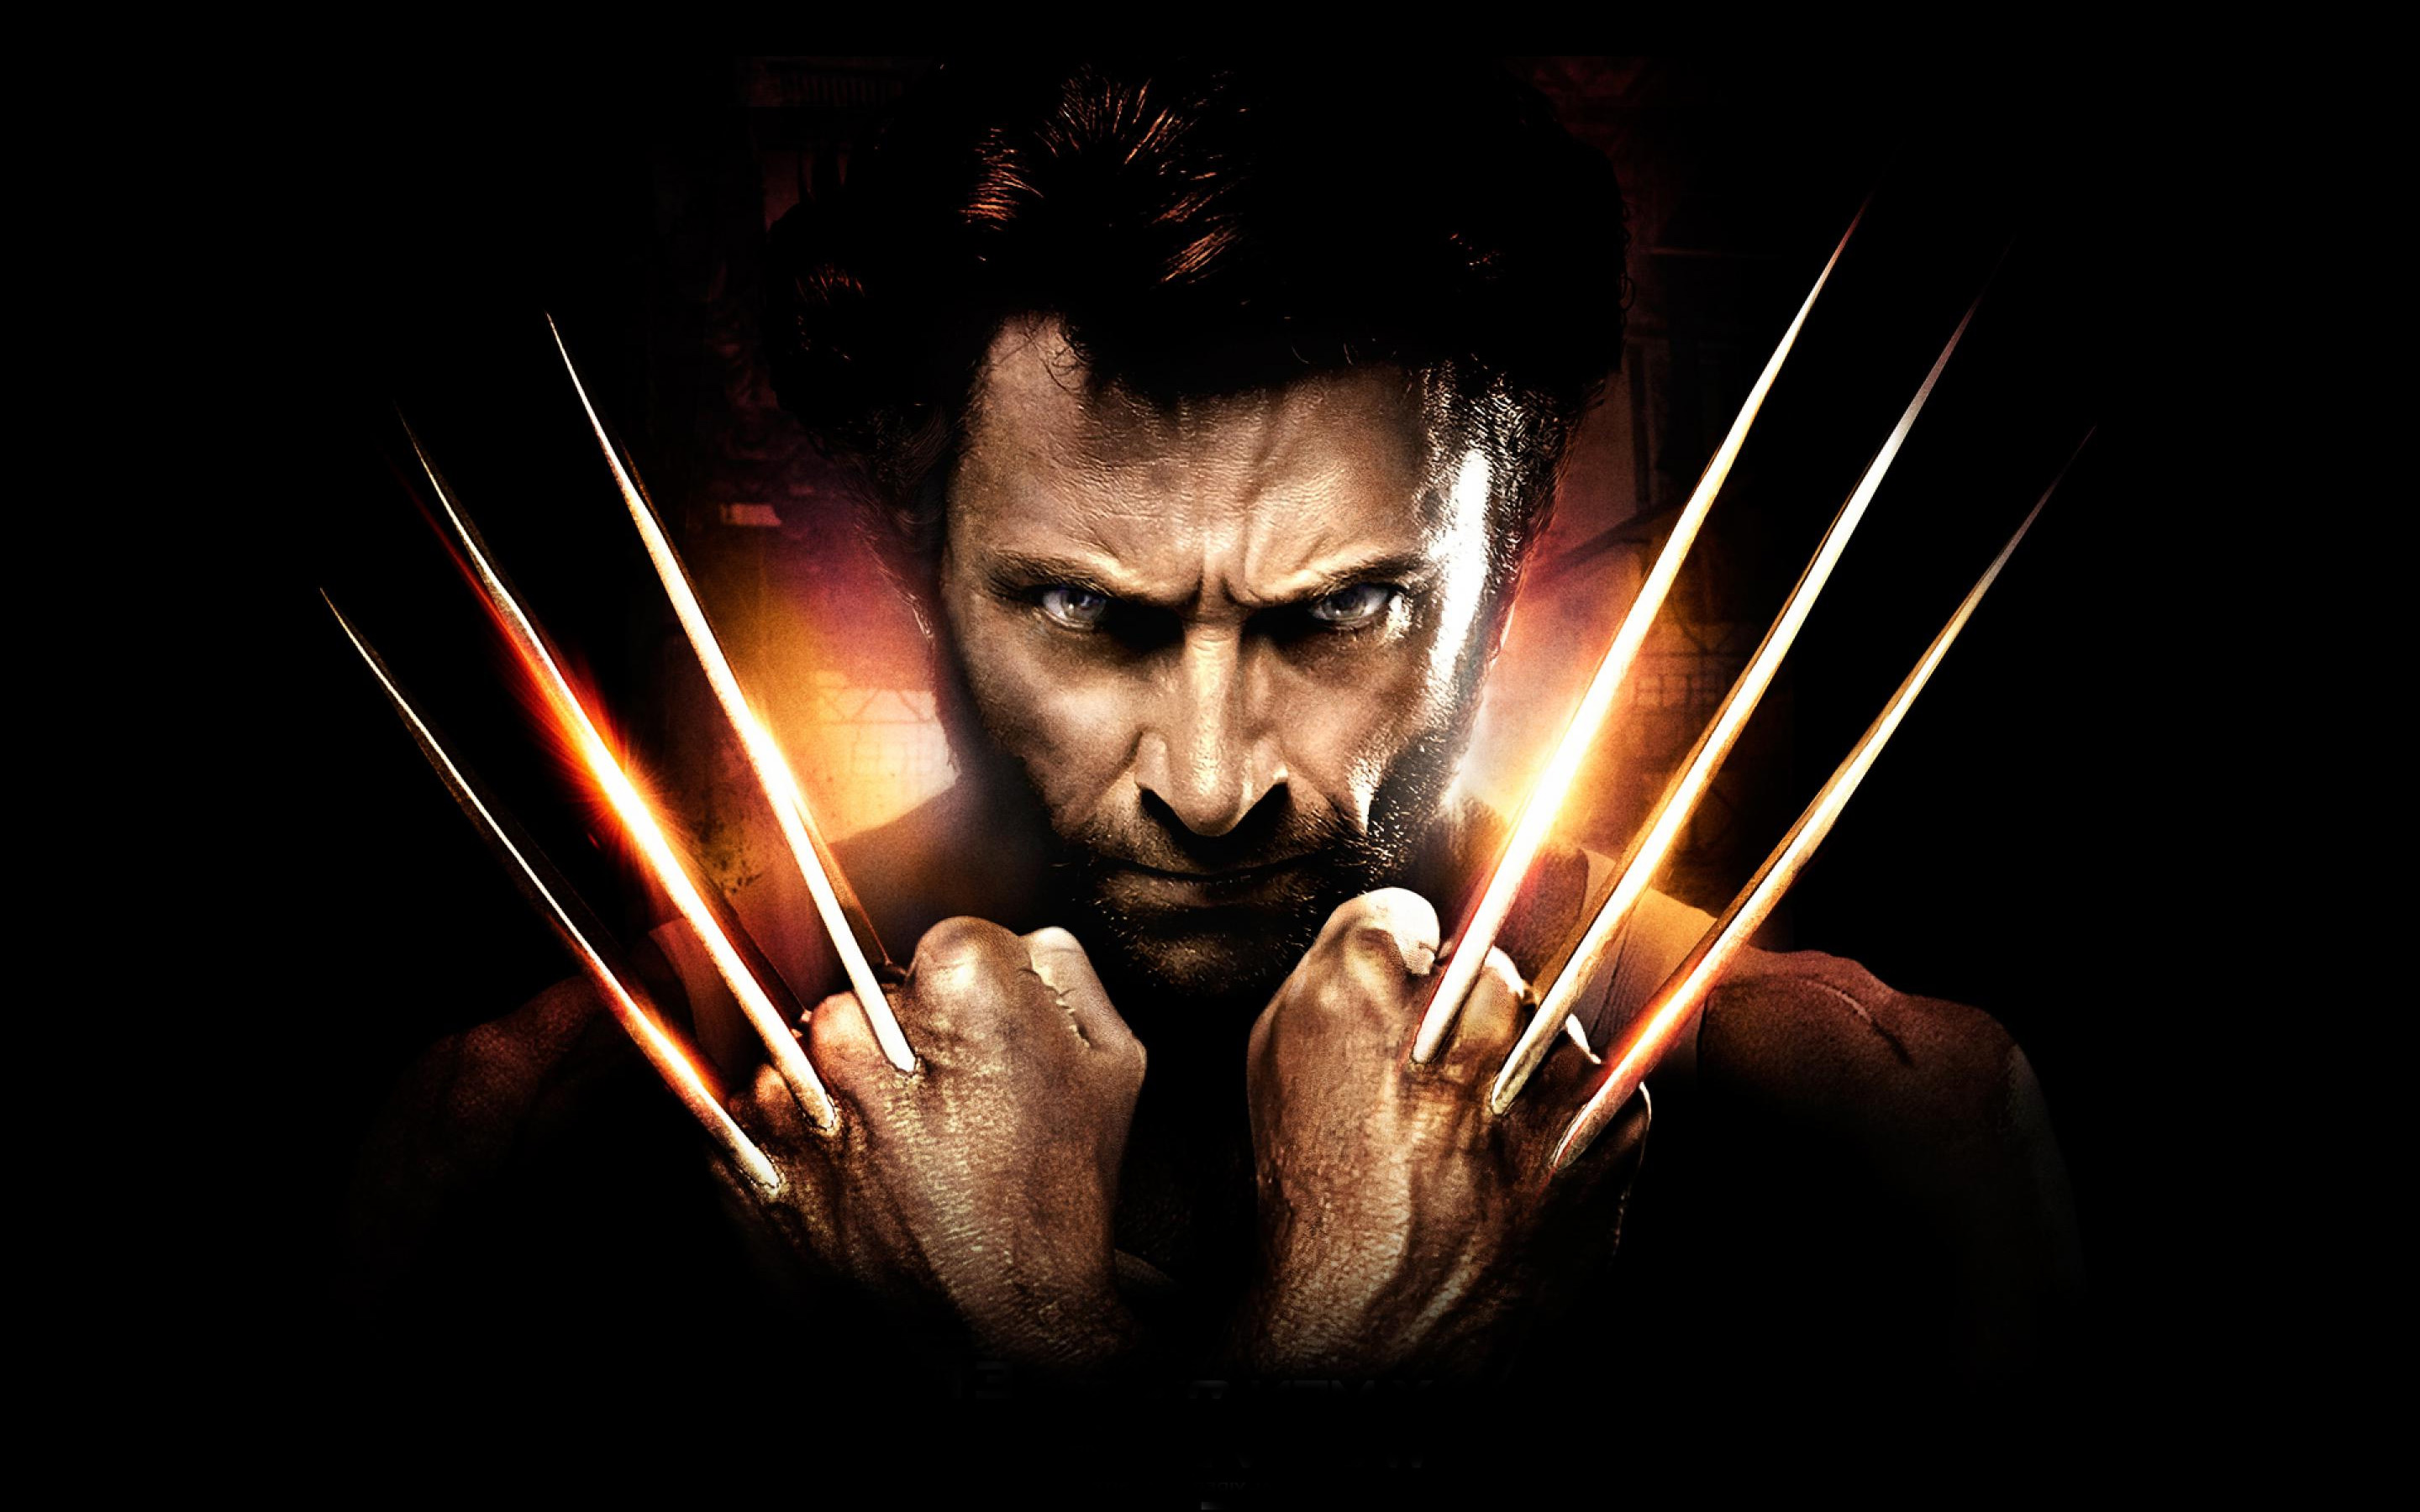 Hugh Jackman Wolverine Wallpaper Picture For Free Wallpaper